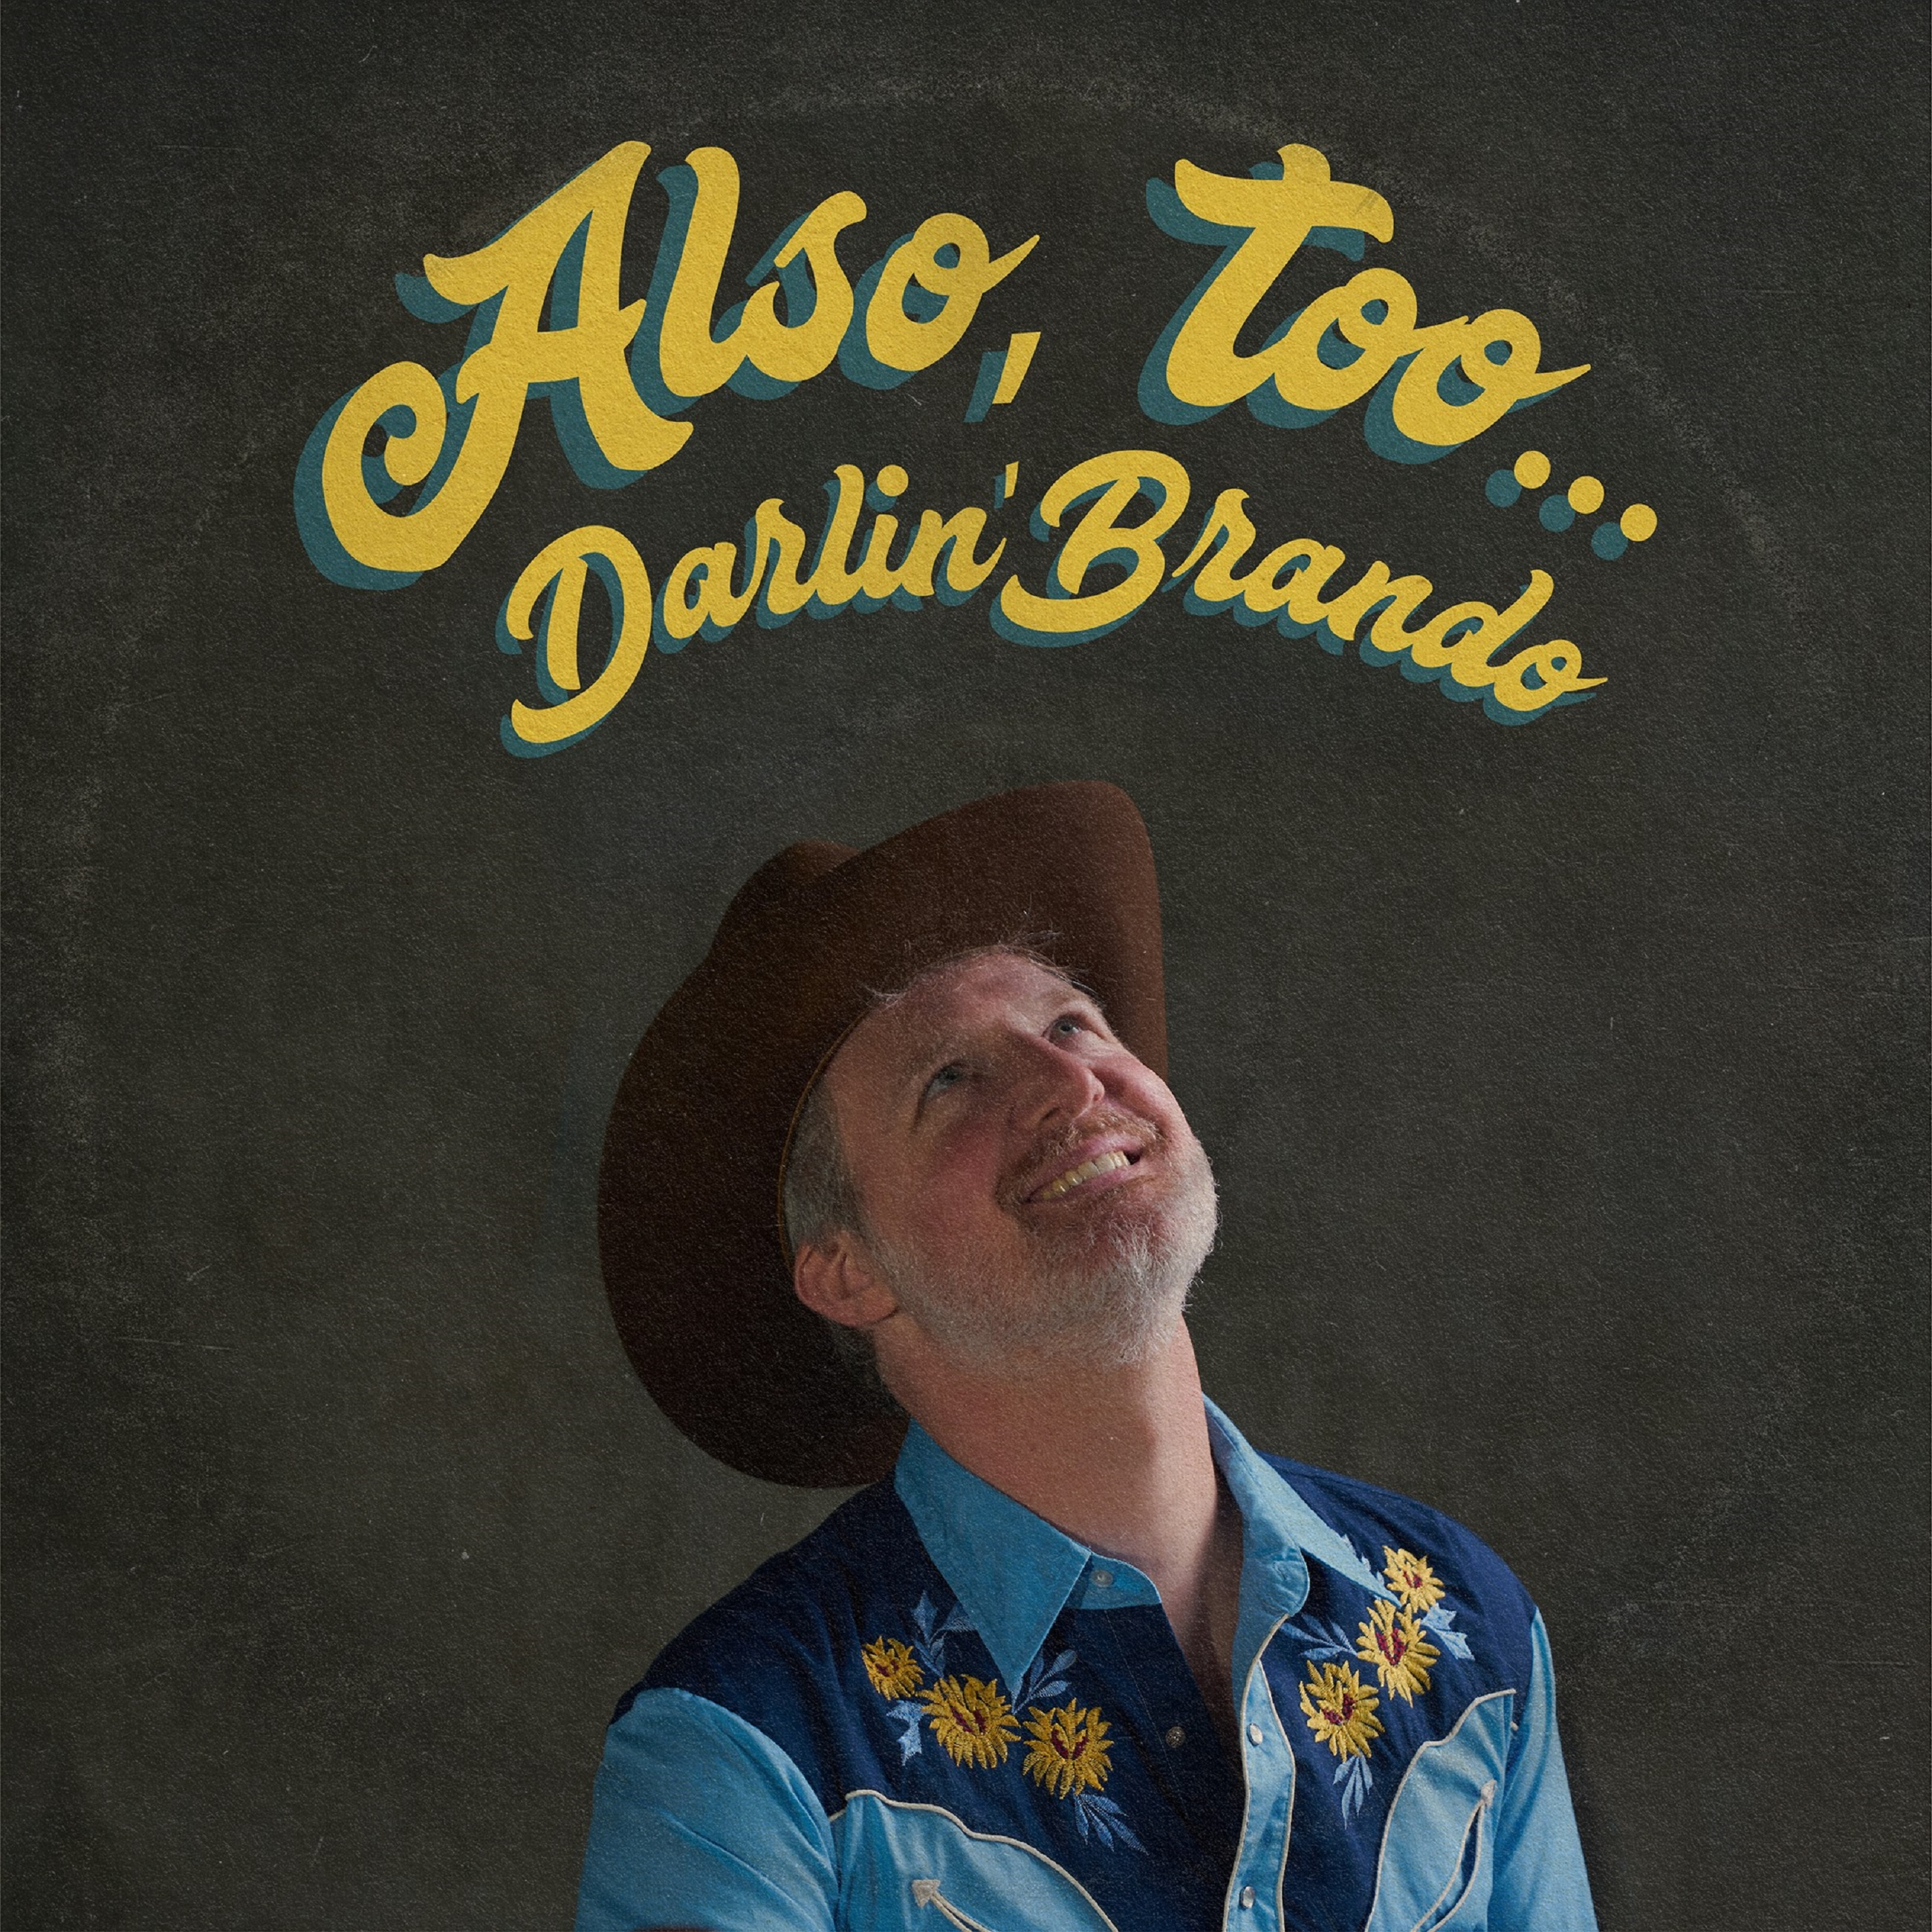 Darlin' Brando's 'Also, Too...' Available Now